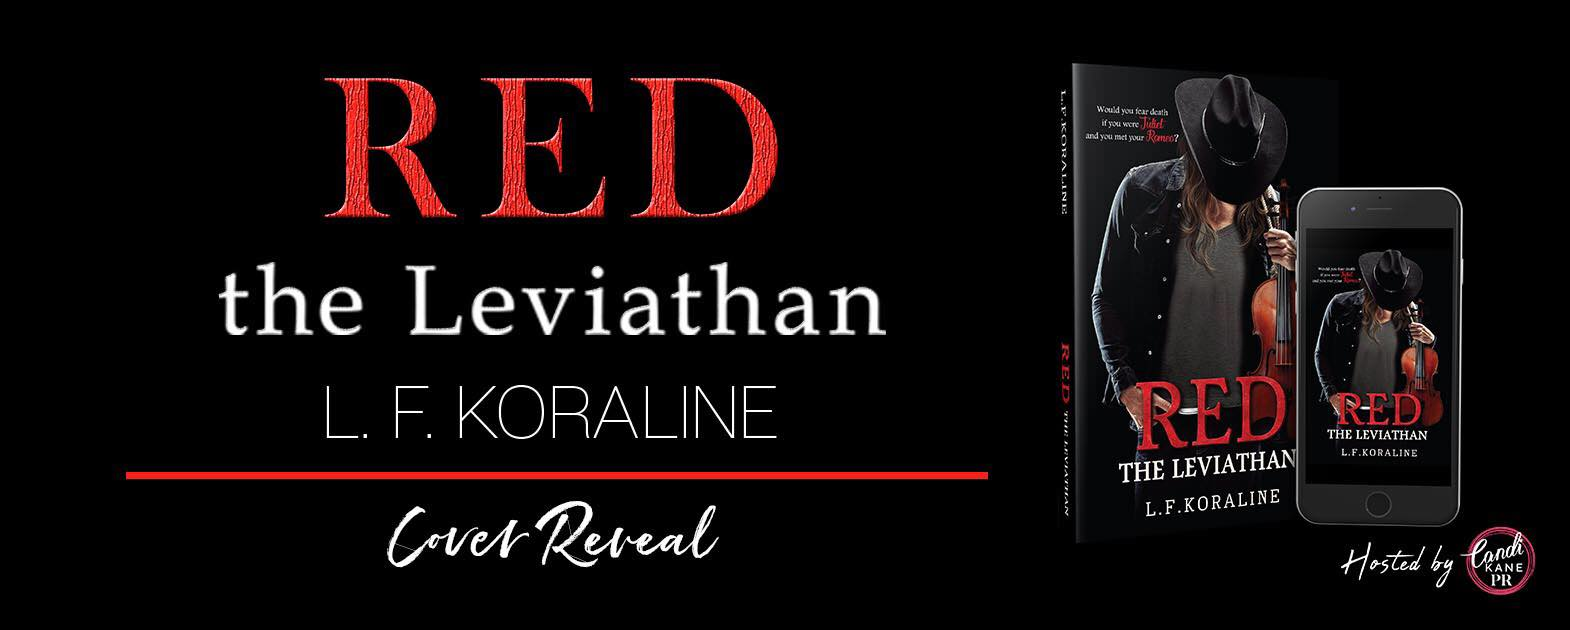 Red Leviathan Cover Reveal